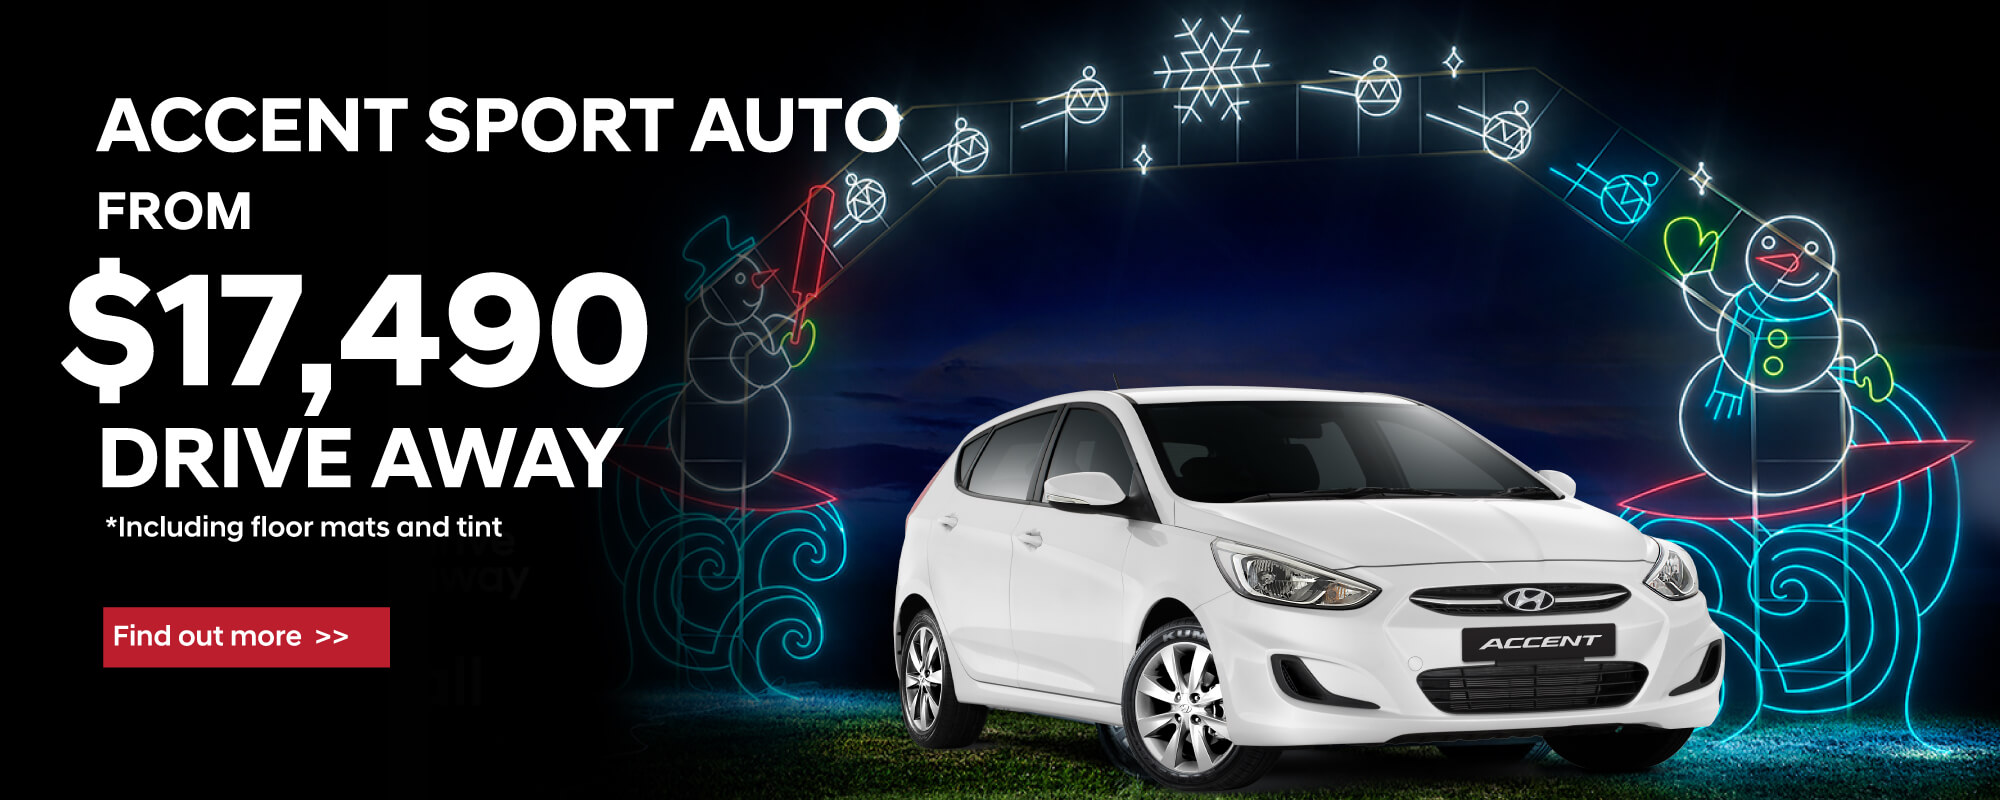 'white hyundai accent sport auto hatch' from the web at 'http://resource.digitaldealer.com.au/image/12340402245a2a0b803ad75559102586_0_0.jpg'